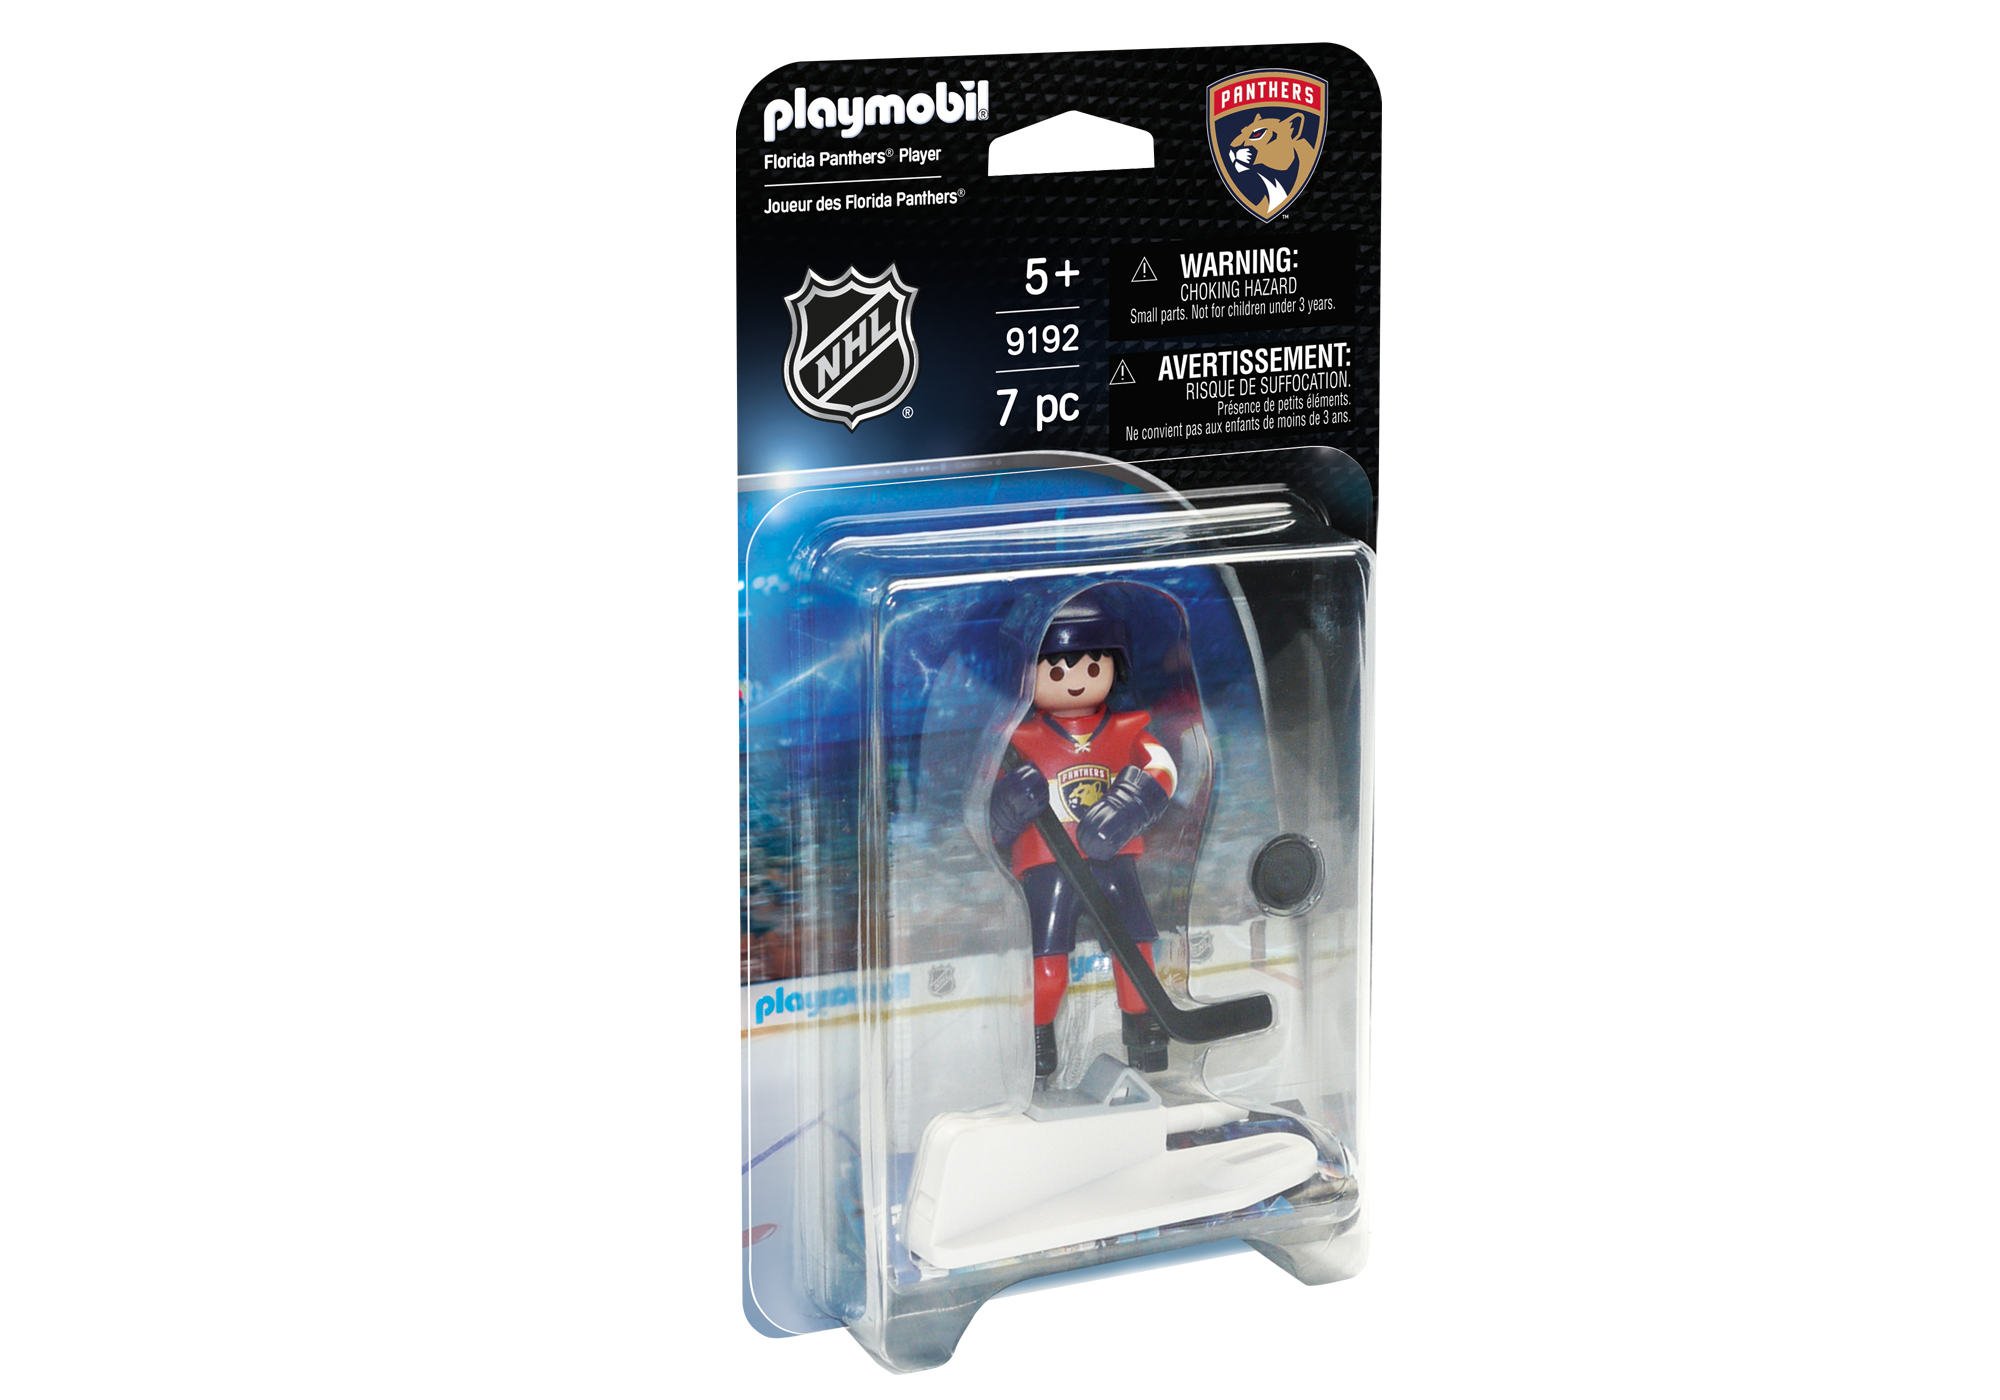 http://media.playmobil.com/i/playmobil/9192_product_box_front